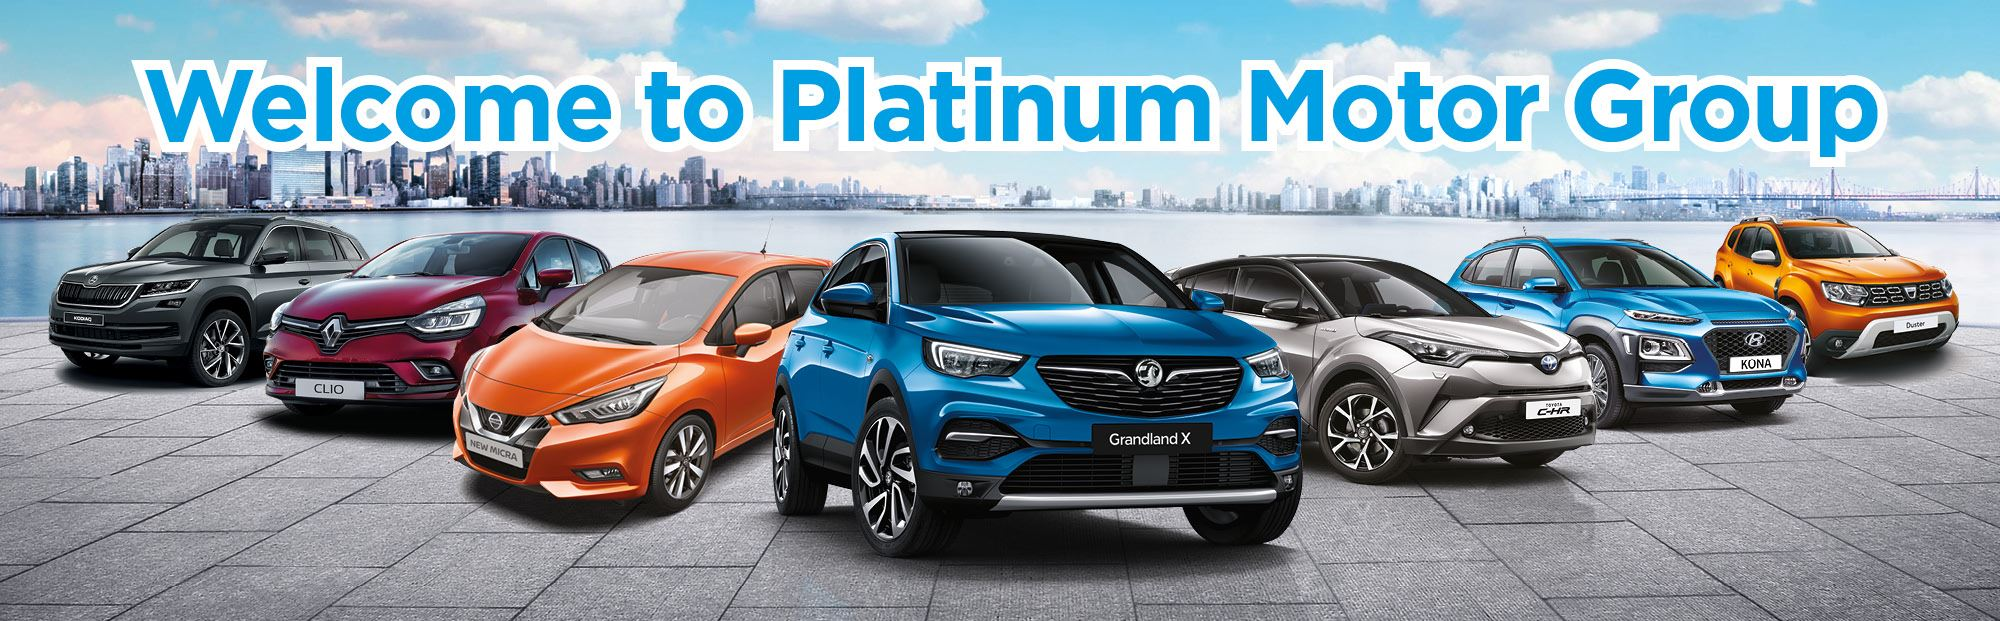 Platinum Motor Group